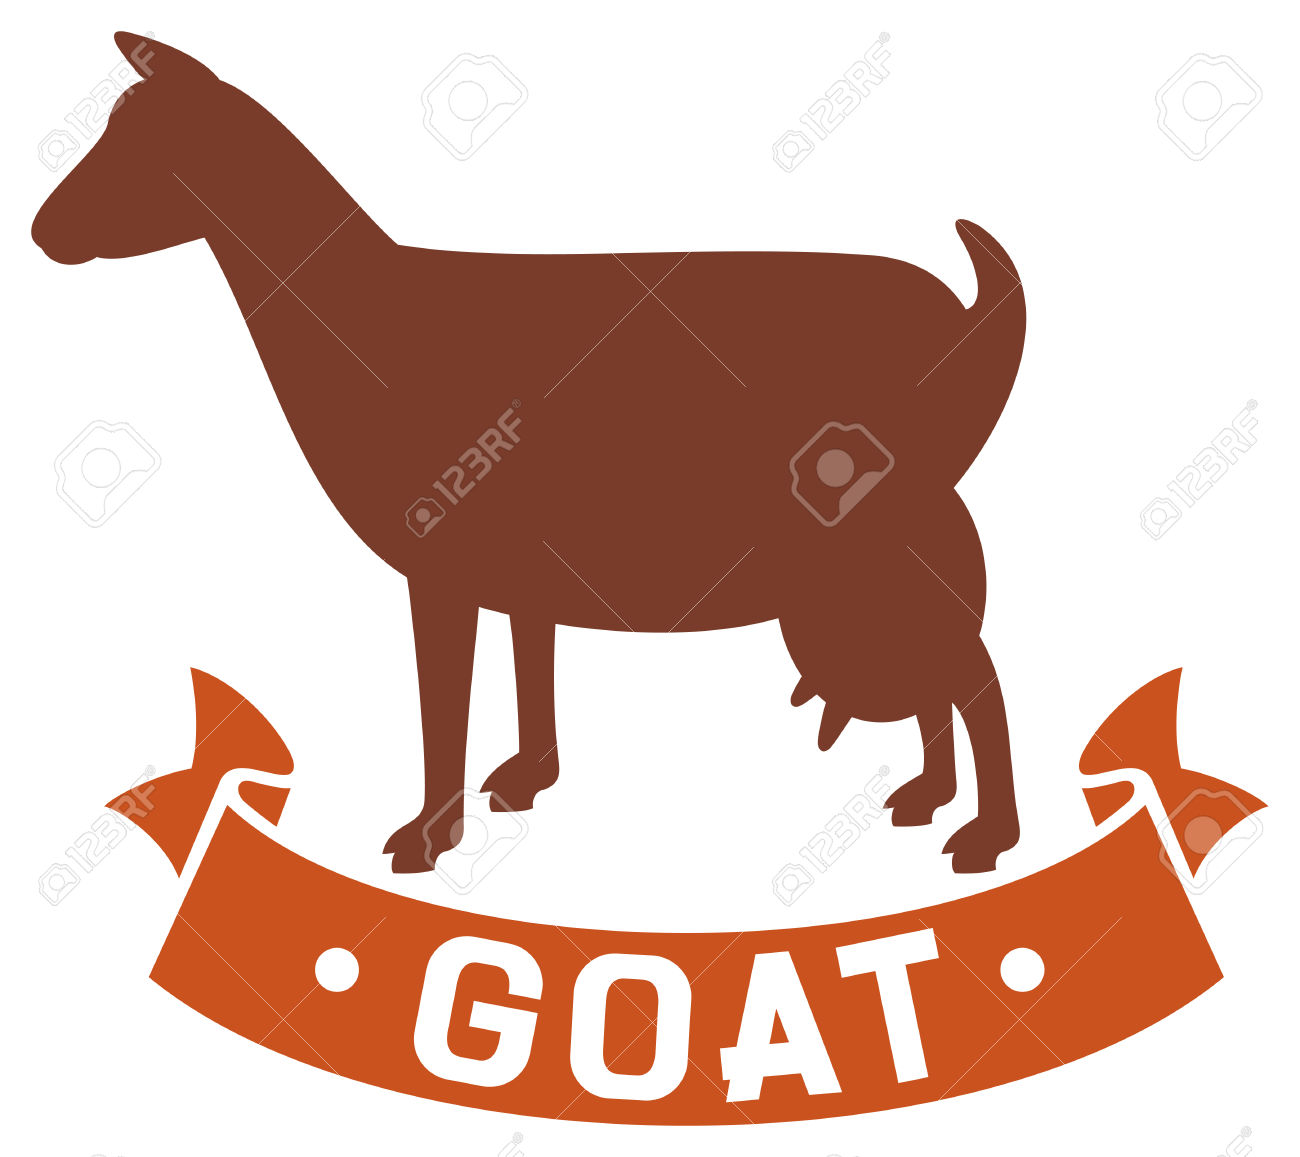 Goat Symbol Goat Icon Royalty Free Cliparts, Vectors, And Stock.